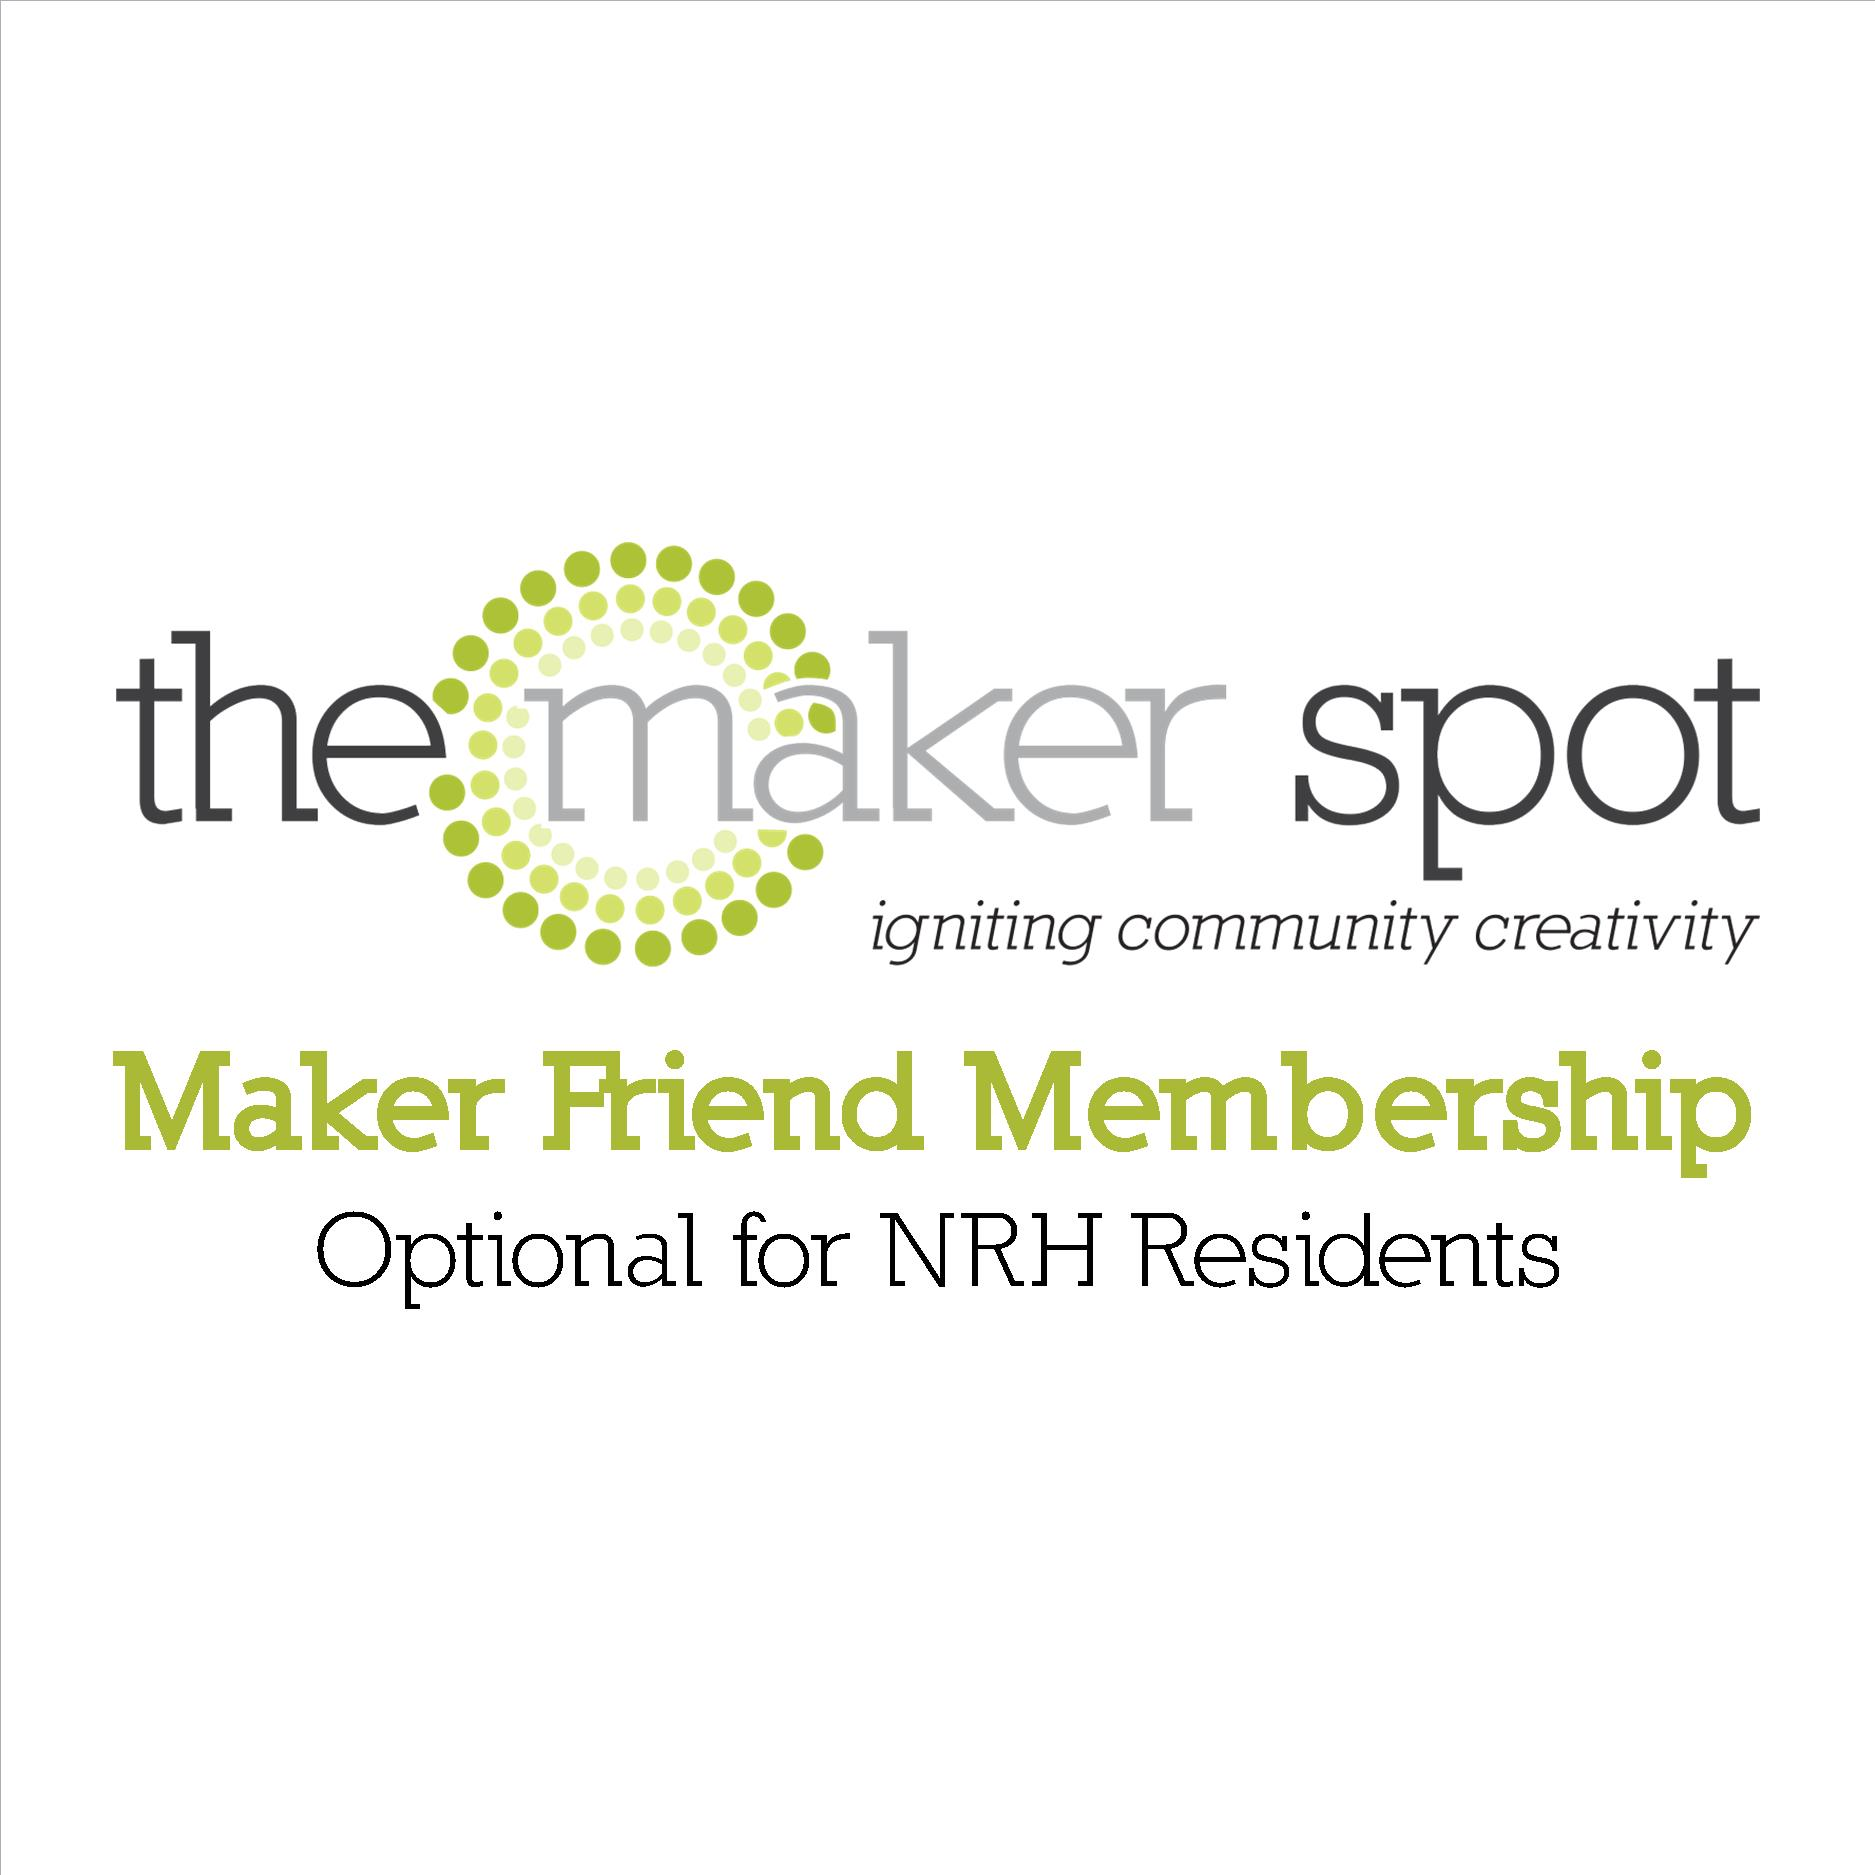 Maker Friend Membership